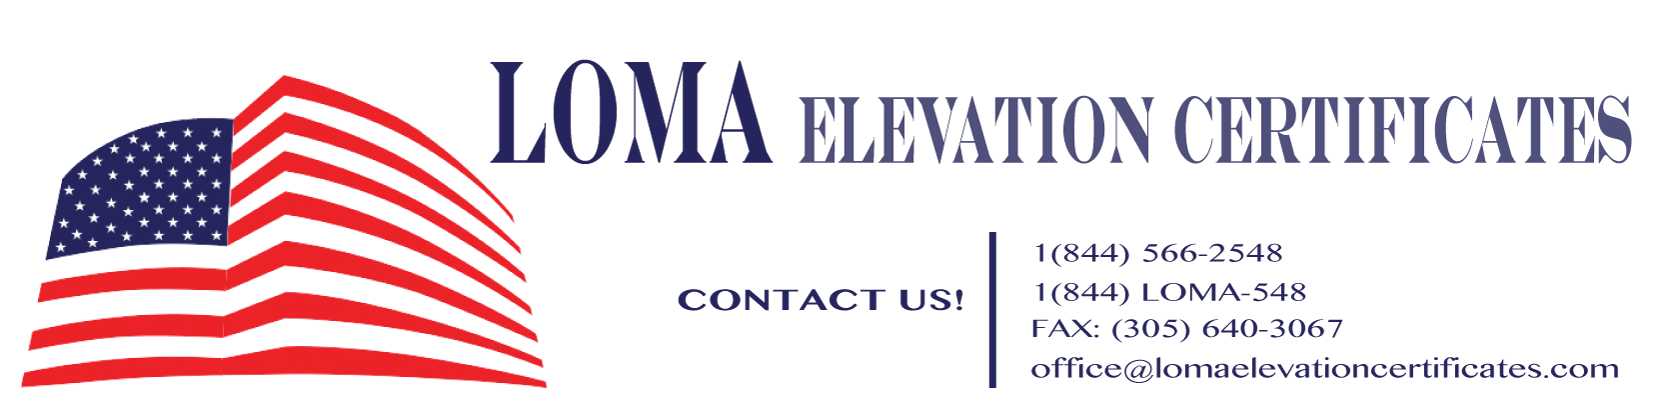 Loma Elevation Certificates